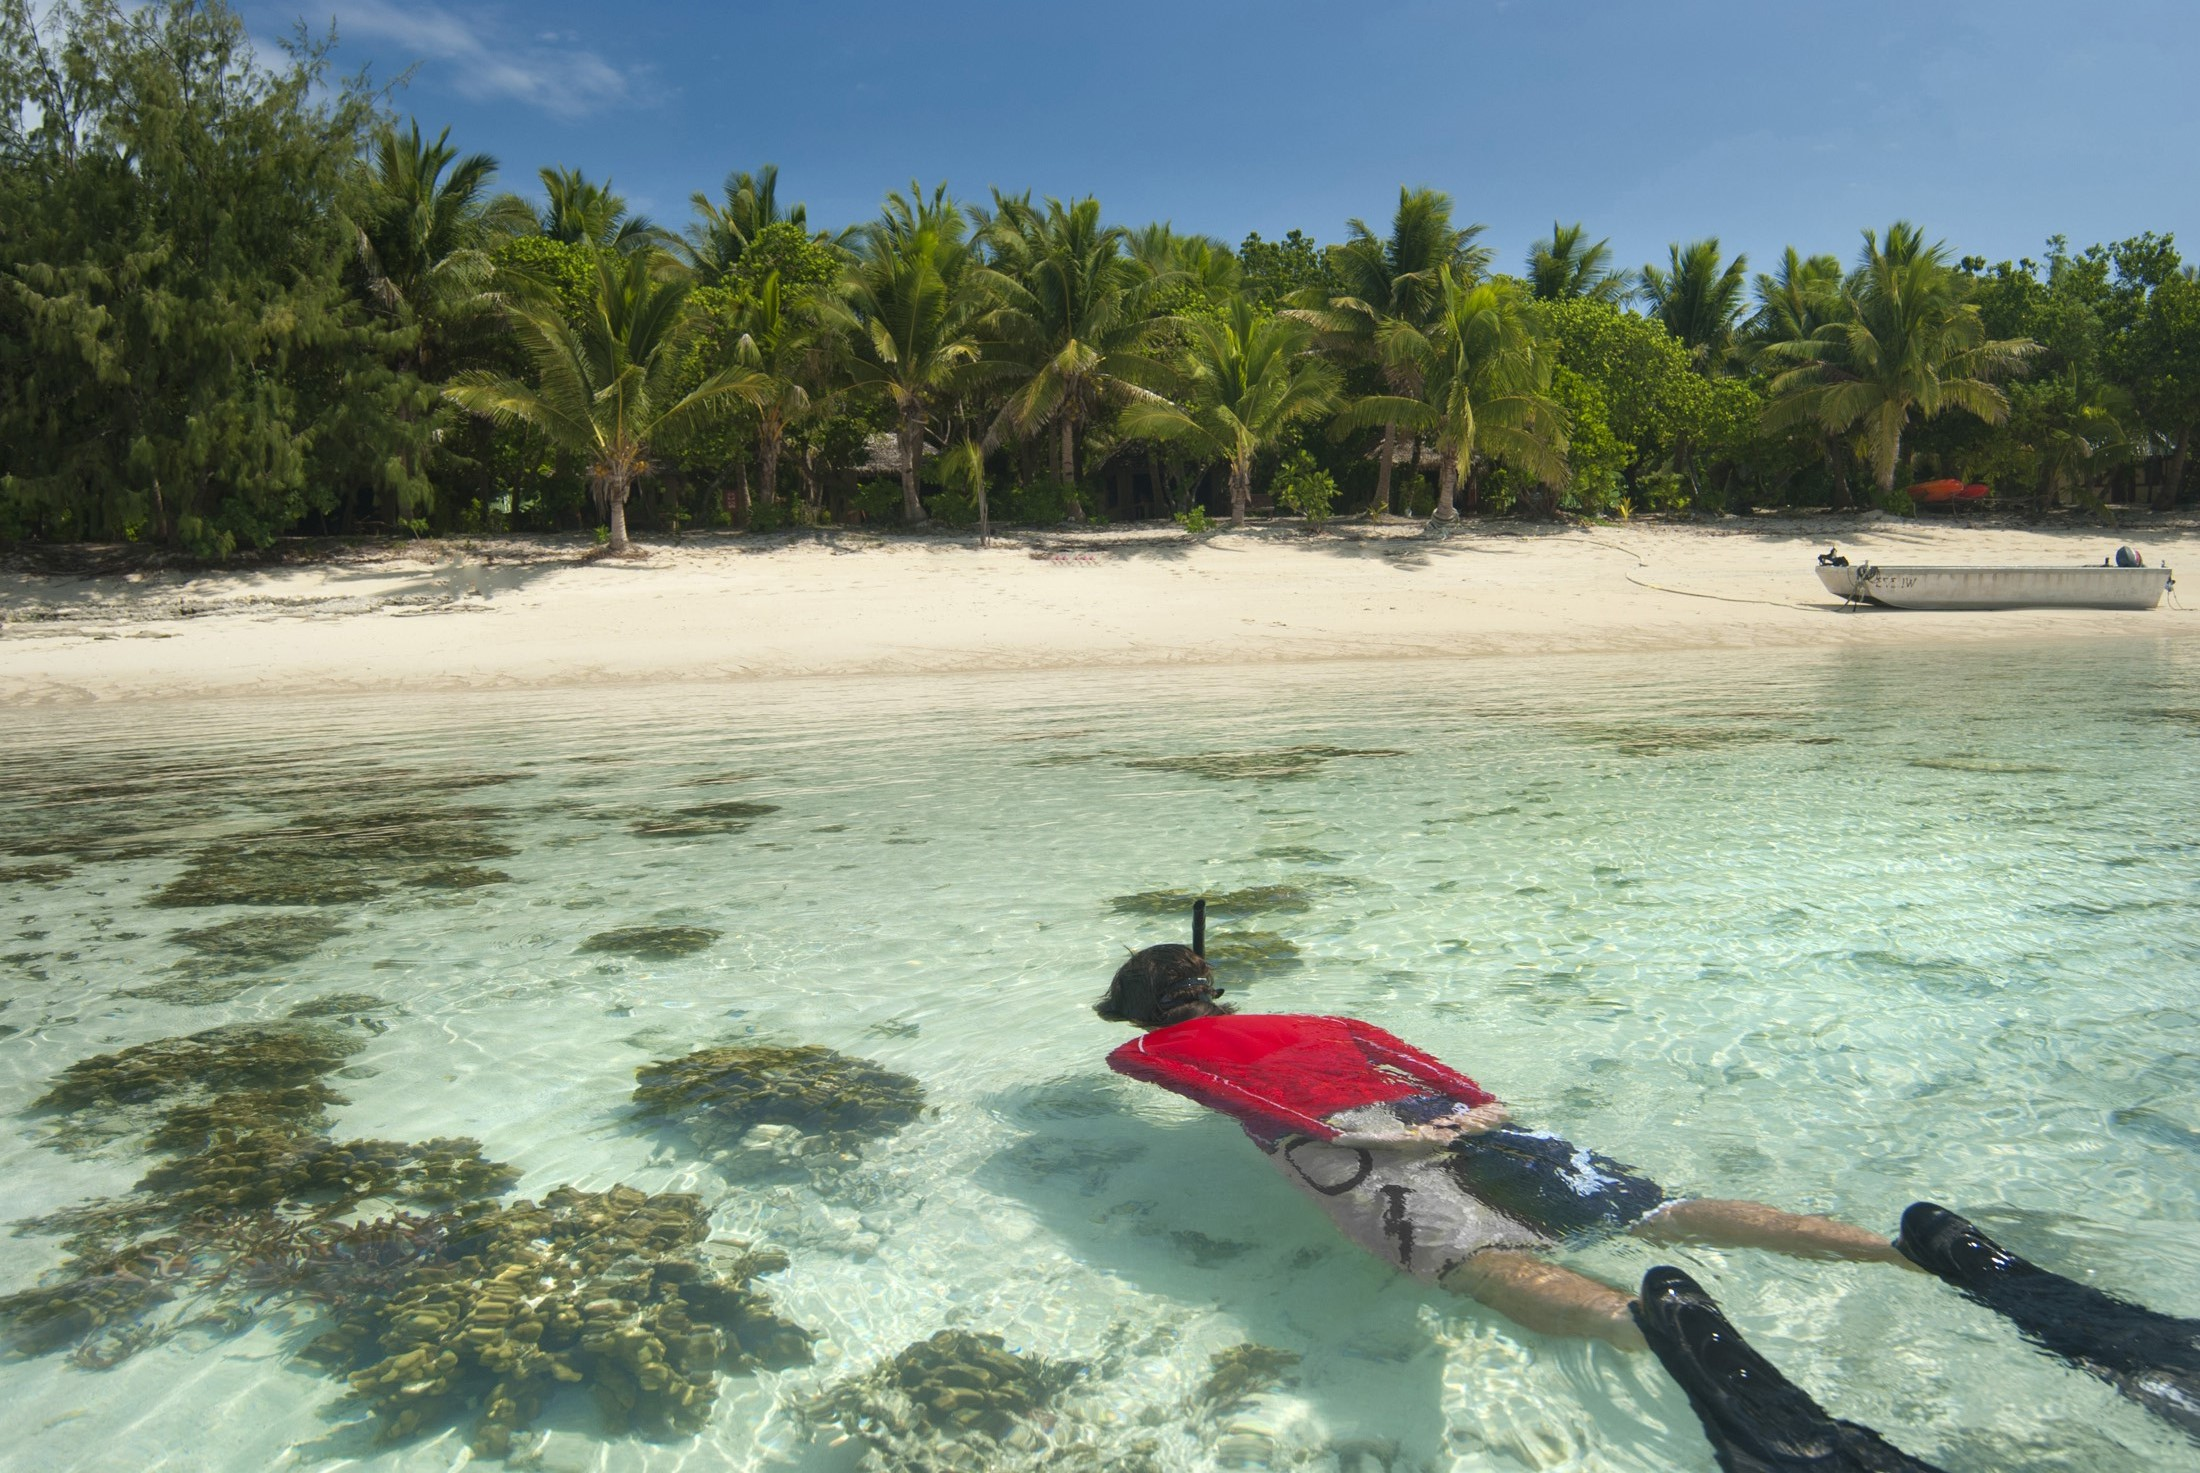 Man snorkeling off a tropical island floating over a shallow reef in crystal clear water